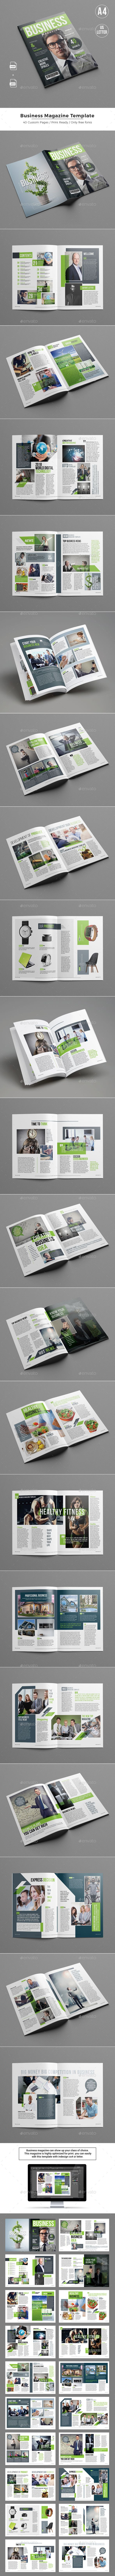 Business Magazine Template | Revistas, Ideas para y Ideas